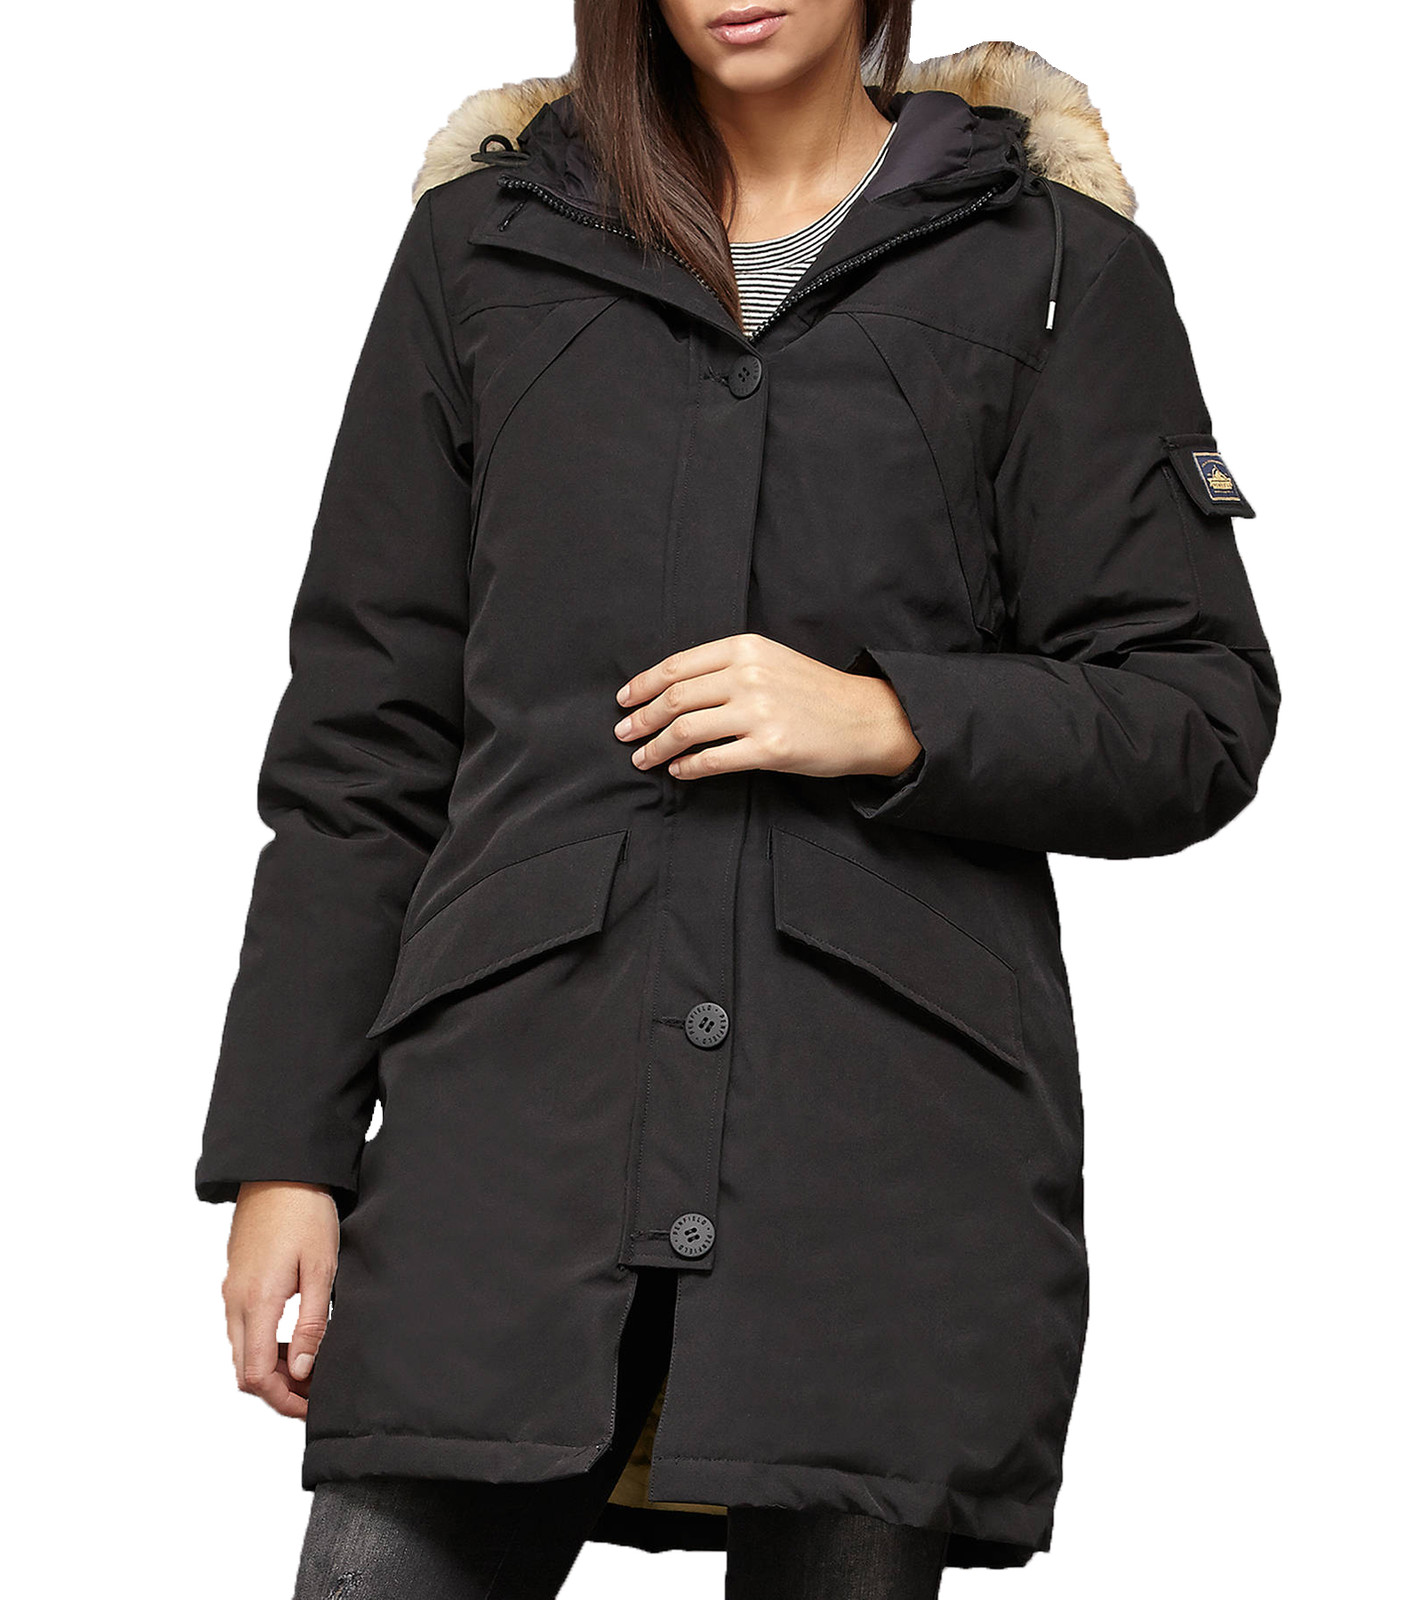 the best attitude f8930 dd1ee PENFIELD Jacke wasserfester Damen Outdoor-Parka mit echtem Fell Hosaac  Mountain Schwarz